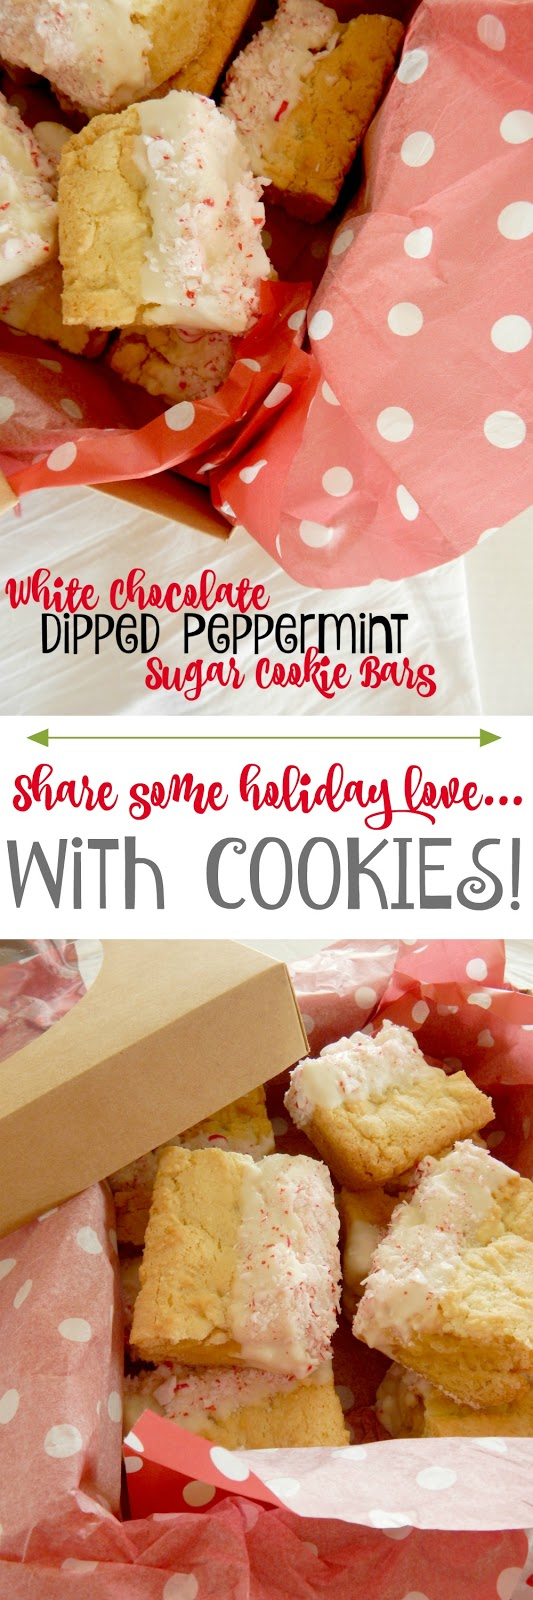 White Chocolate Dipped Peppermint Sugar Cookie Bars...a festive dessert for the holidays!  These peppermint sugar cookie bars taken up a notch dipped in white chocolate and sprinkled with crushed peppermints.  Perfect for your Christmas platter! (sweetandsavoryfood.com)